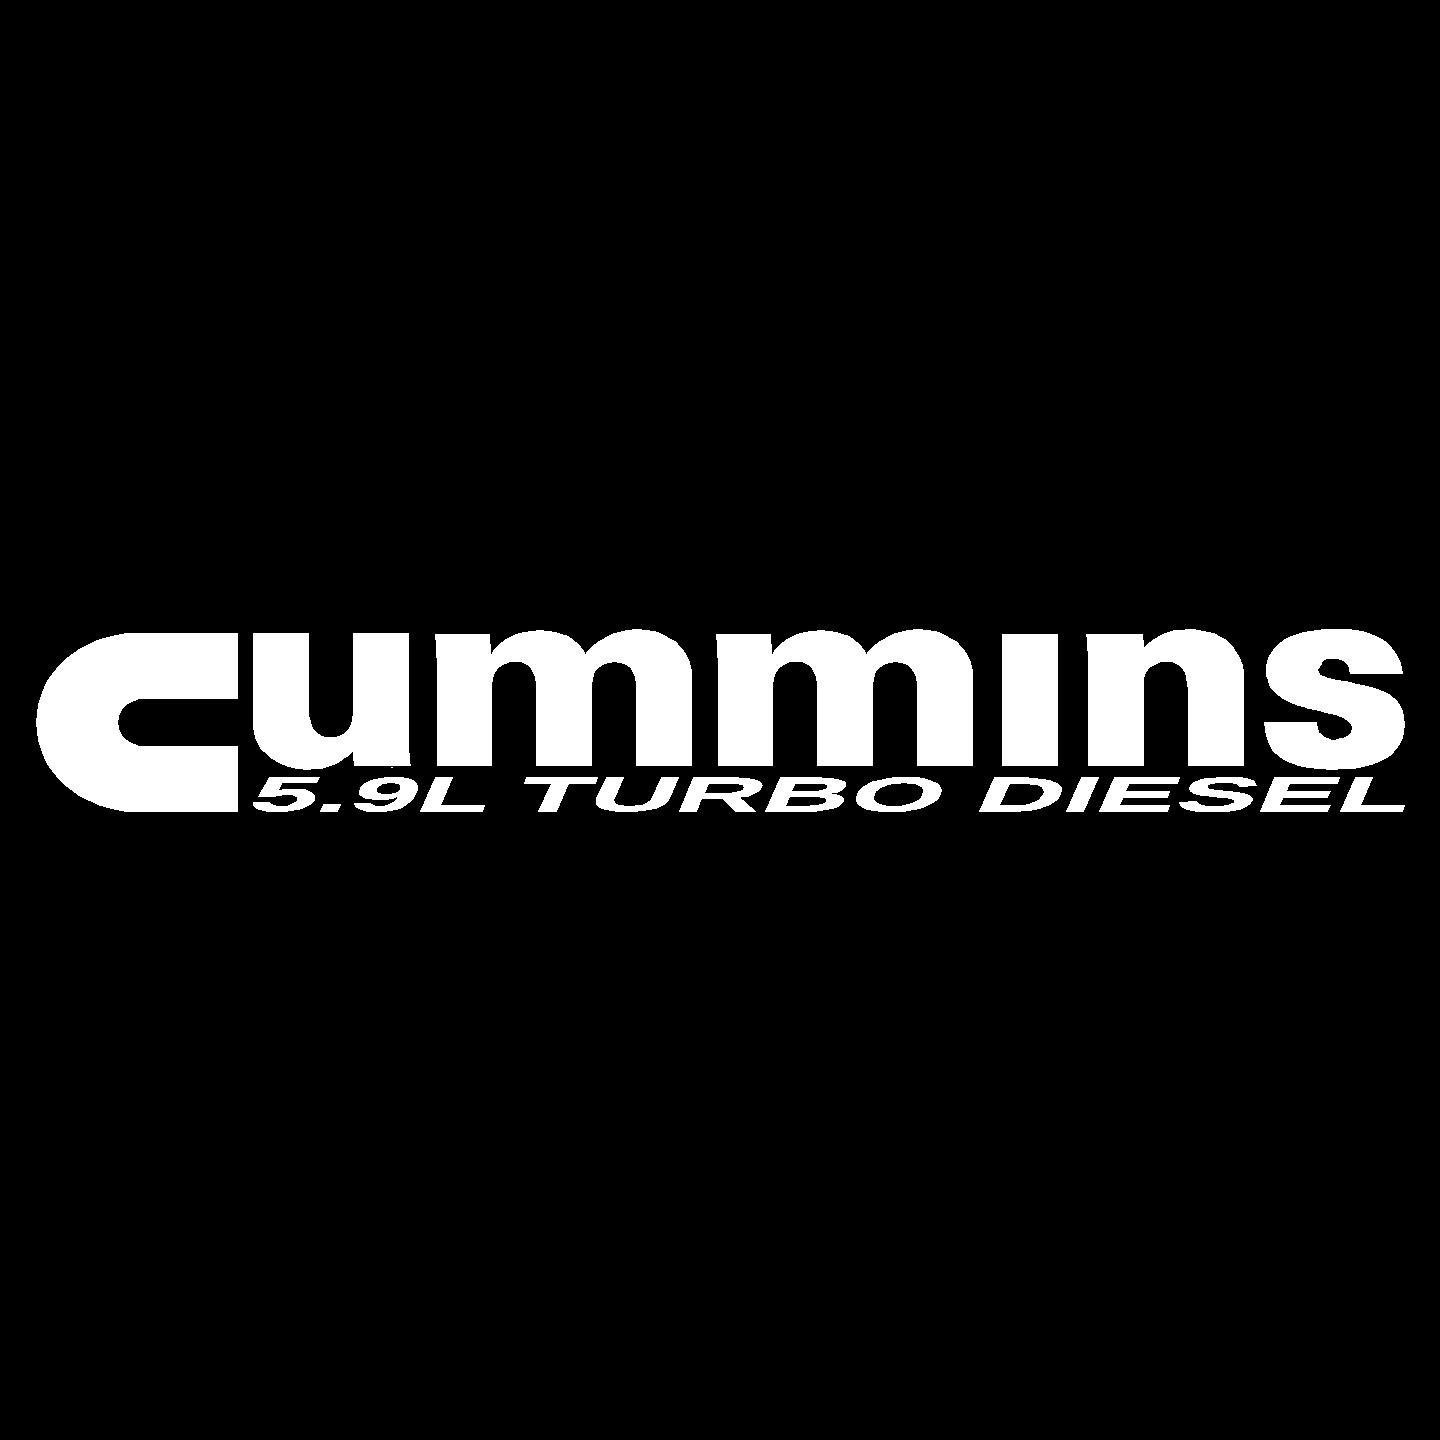 Home Cummins 59L Turbo Diesel   Hood Decal Pair 1 1440x1440